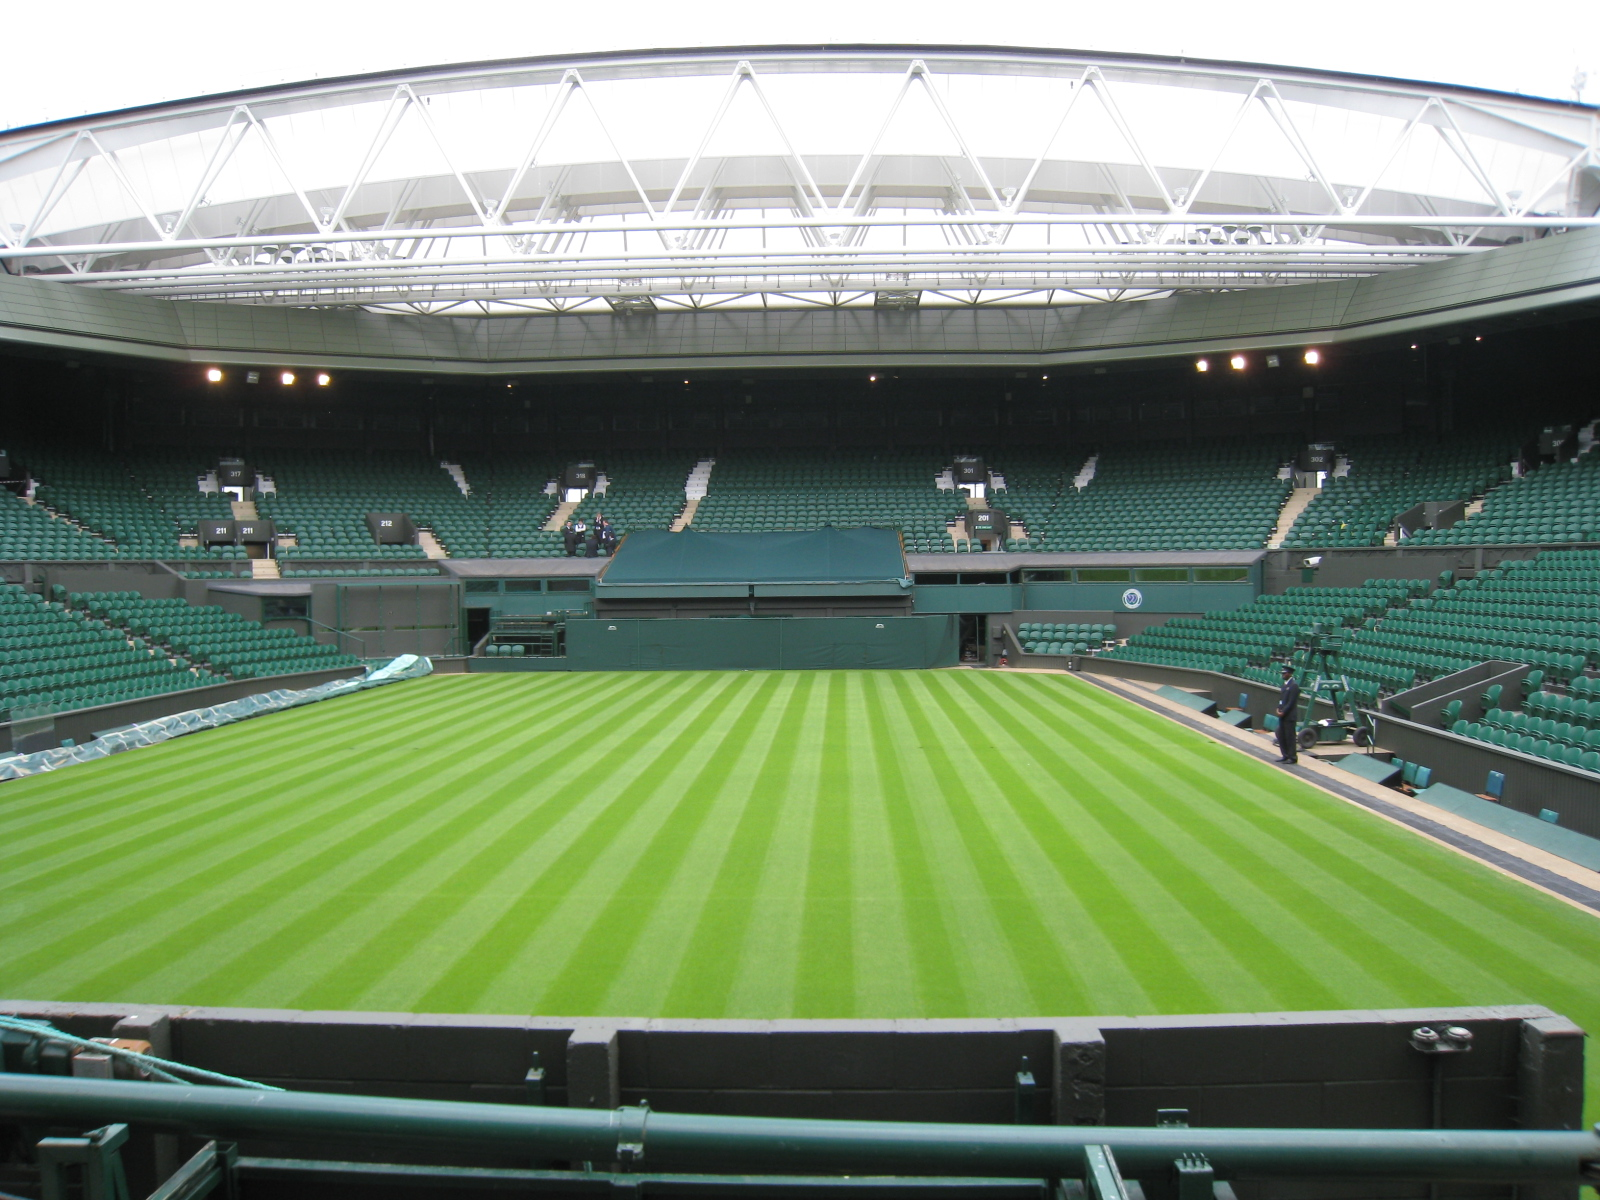 As Wimbledon winds down, a new event begins as different kinds of champions take to the field